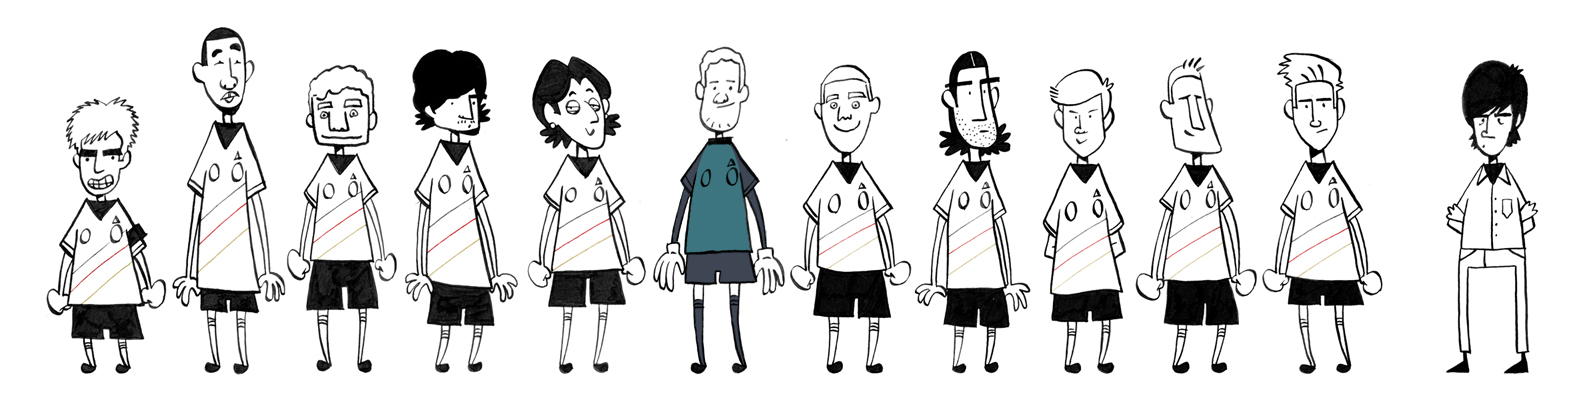 The German Team 2012 by fubumeru